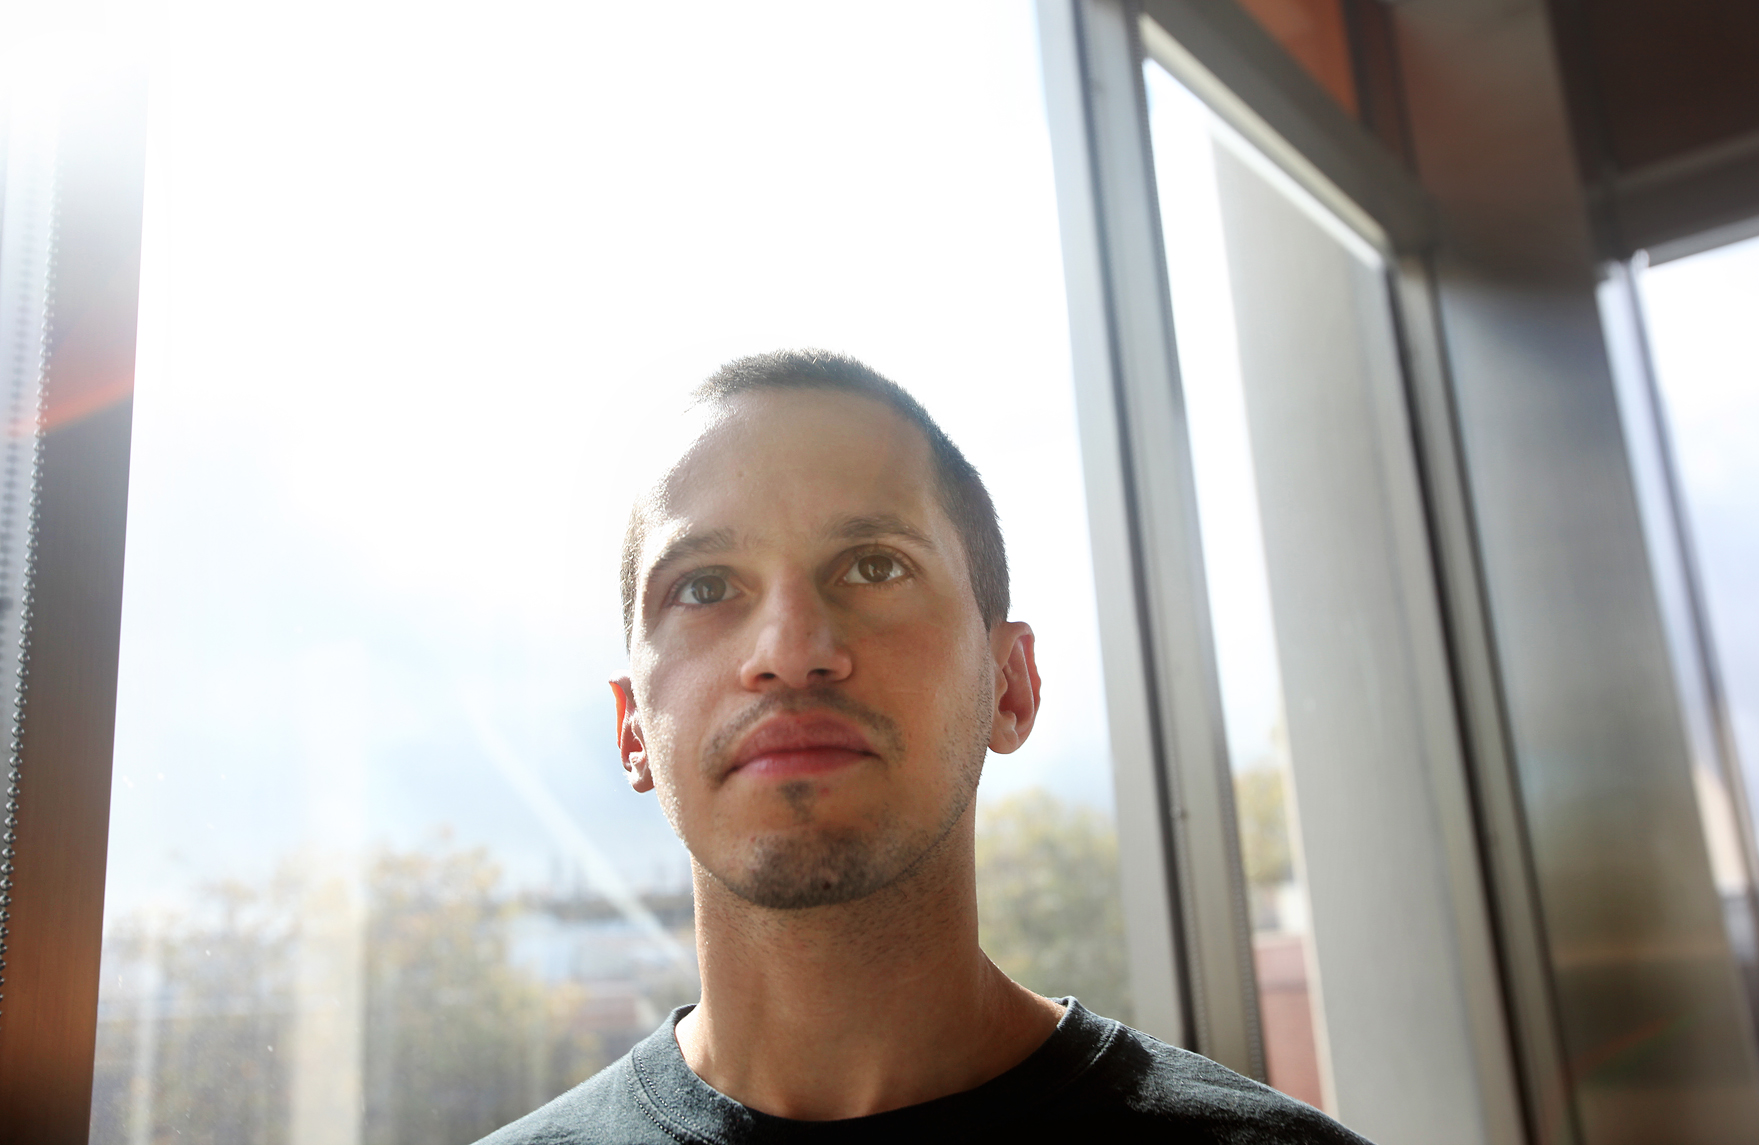 Grandson of economist Milton Friedman, Patri Friedman is the executive director of The Seasteading Institute. Friedman is trying to build a libertarian utopia located in the Pacific Ocean.